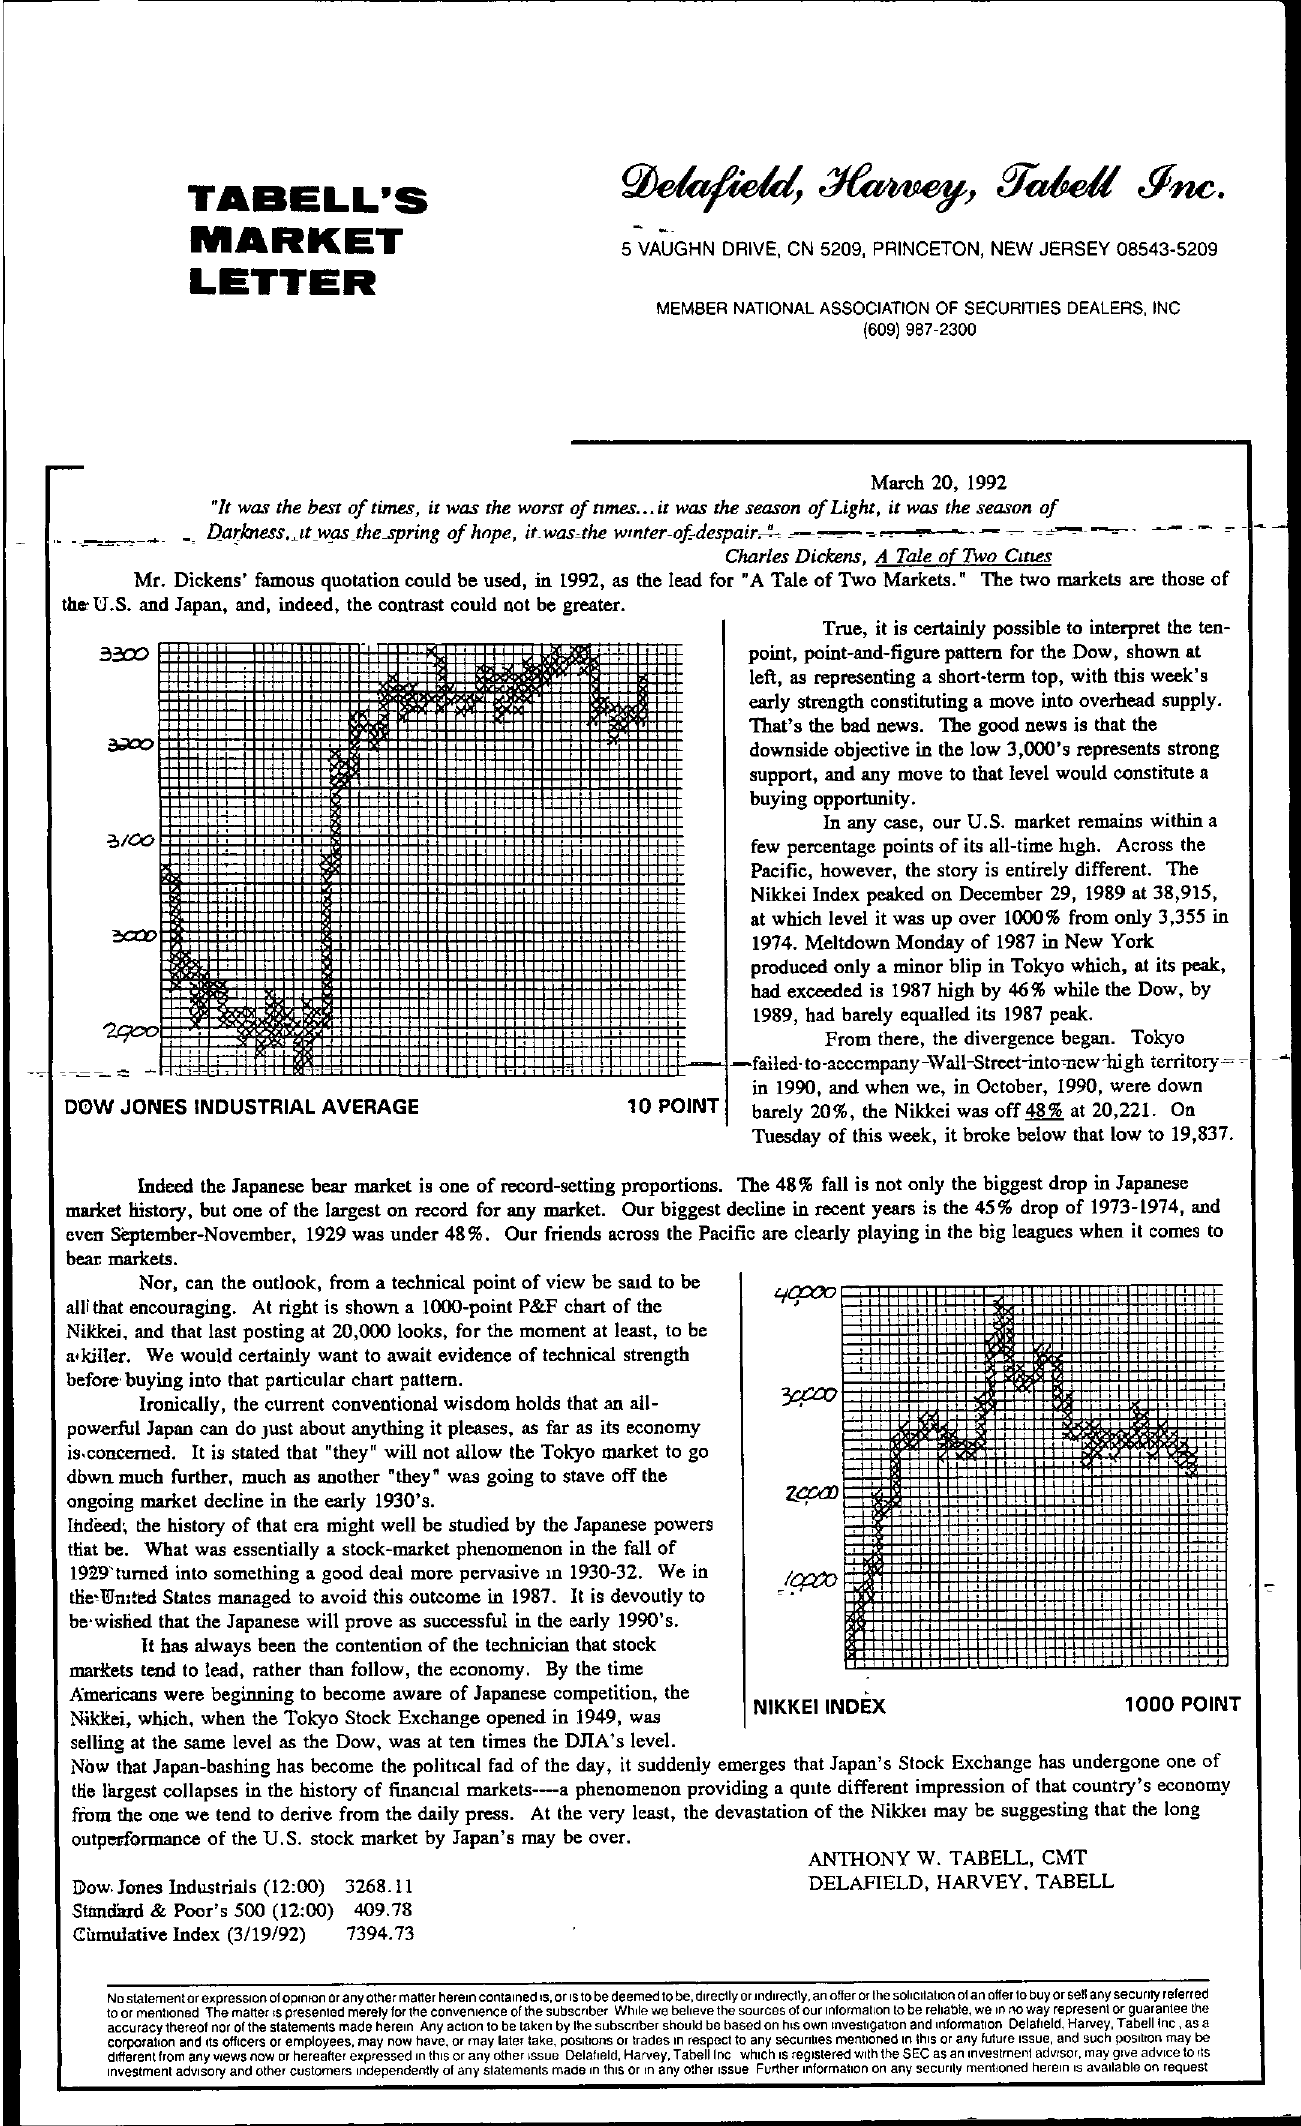 Tabell's Market Letter - March 20, 1992